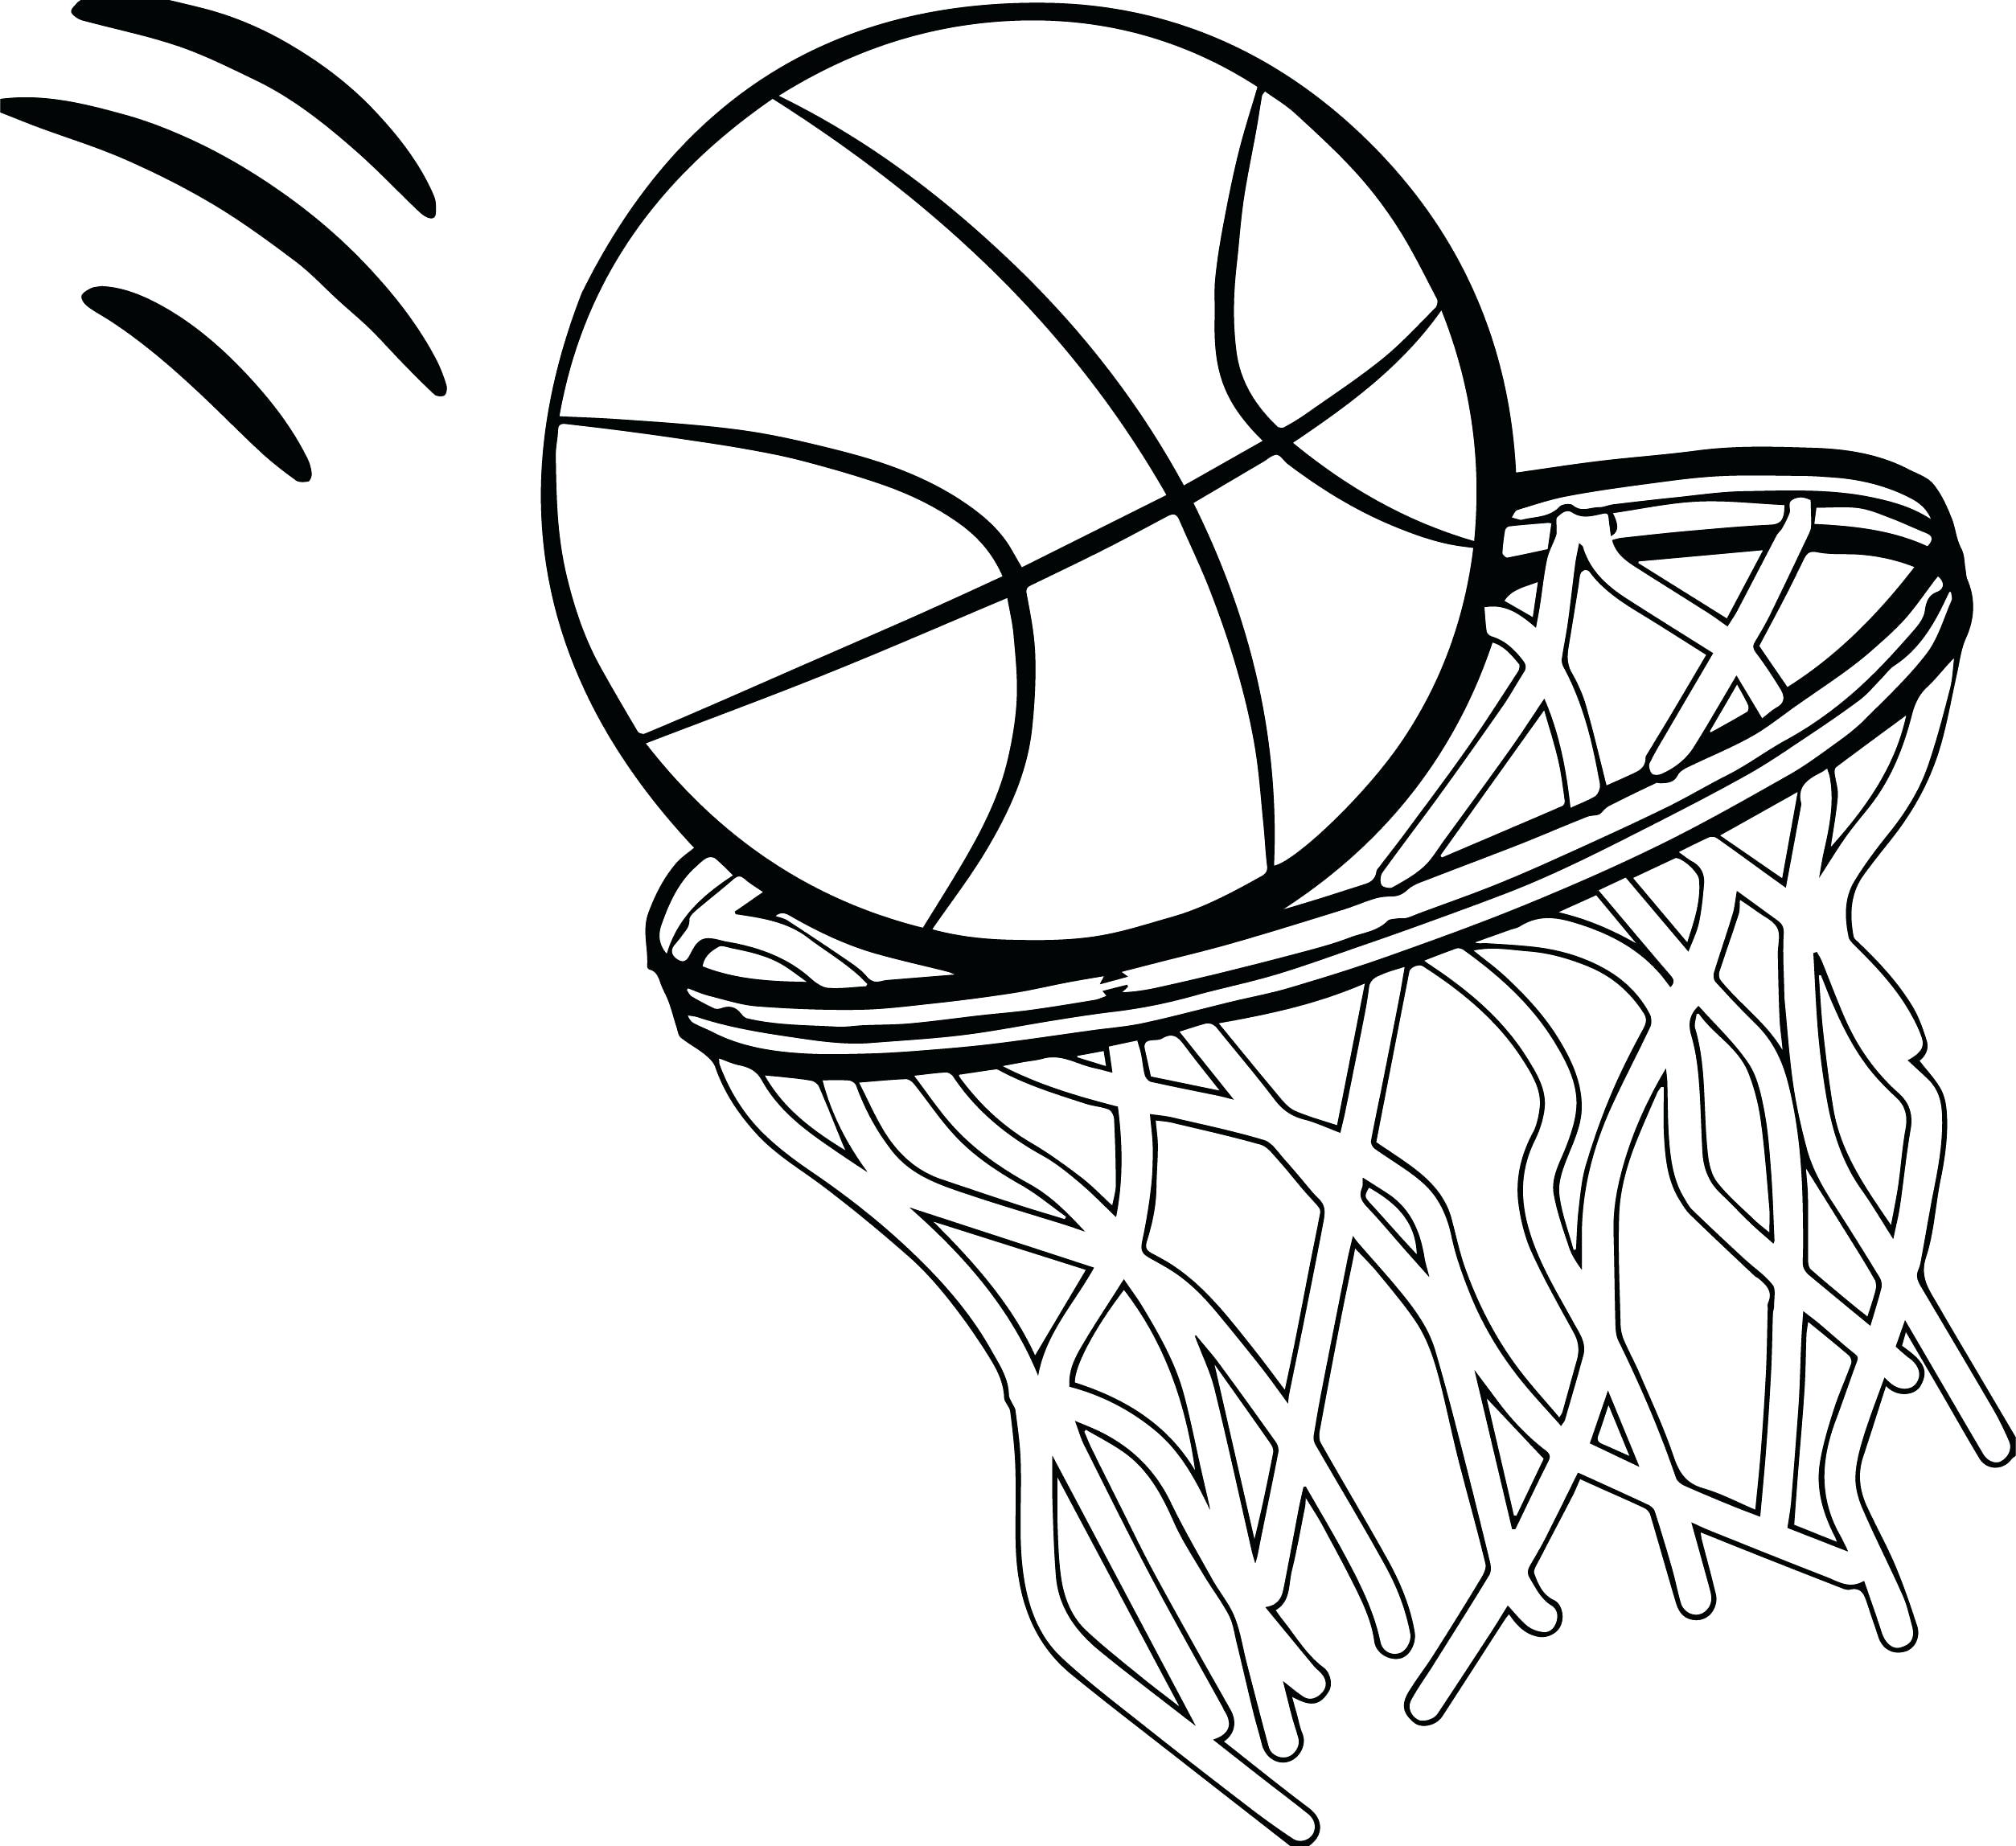 Basketball Goal Drawing At Getdrawings Com Free For Personal Use